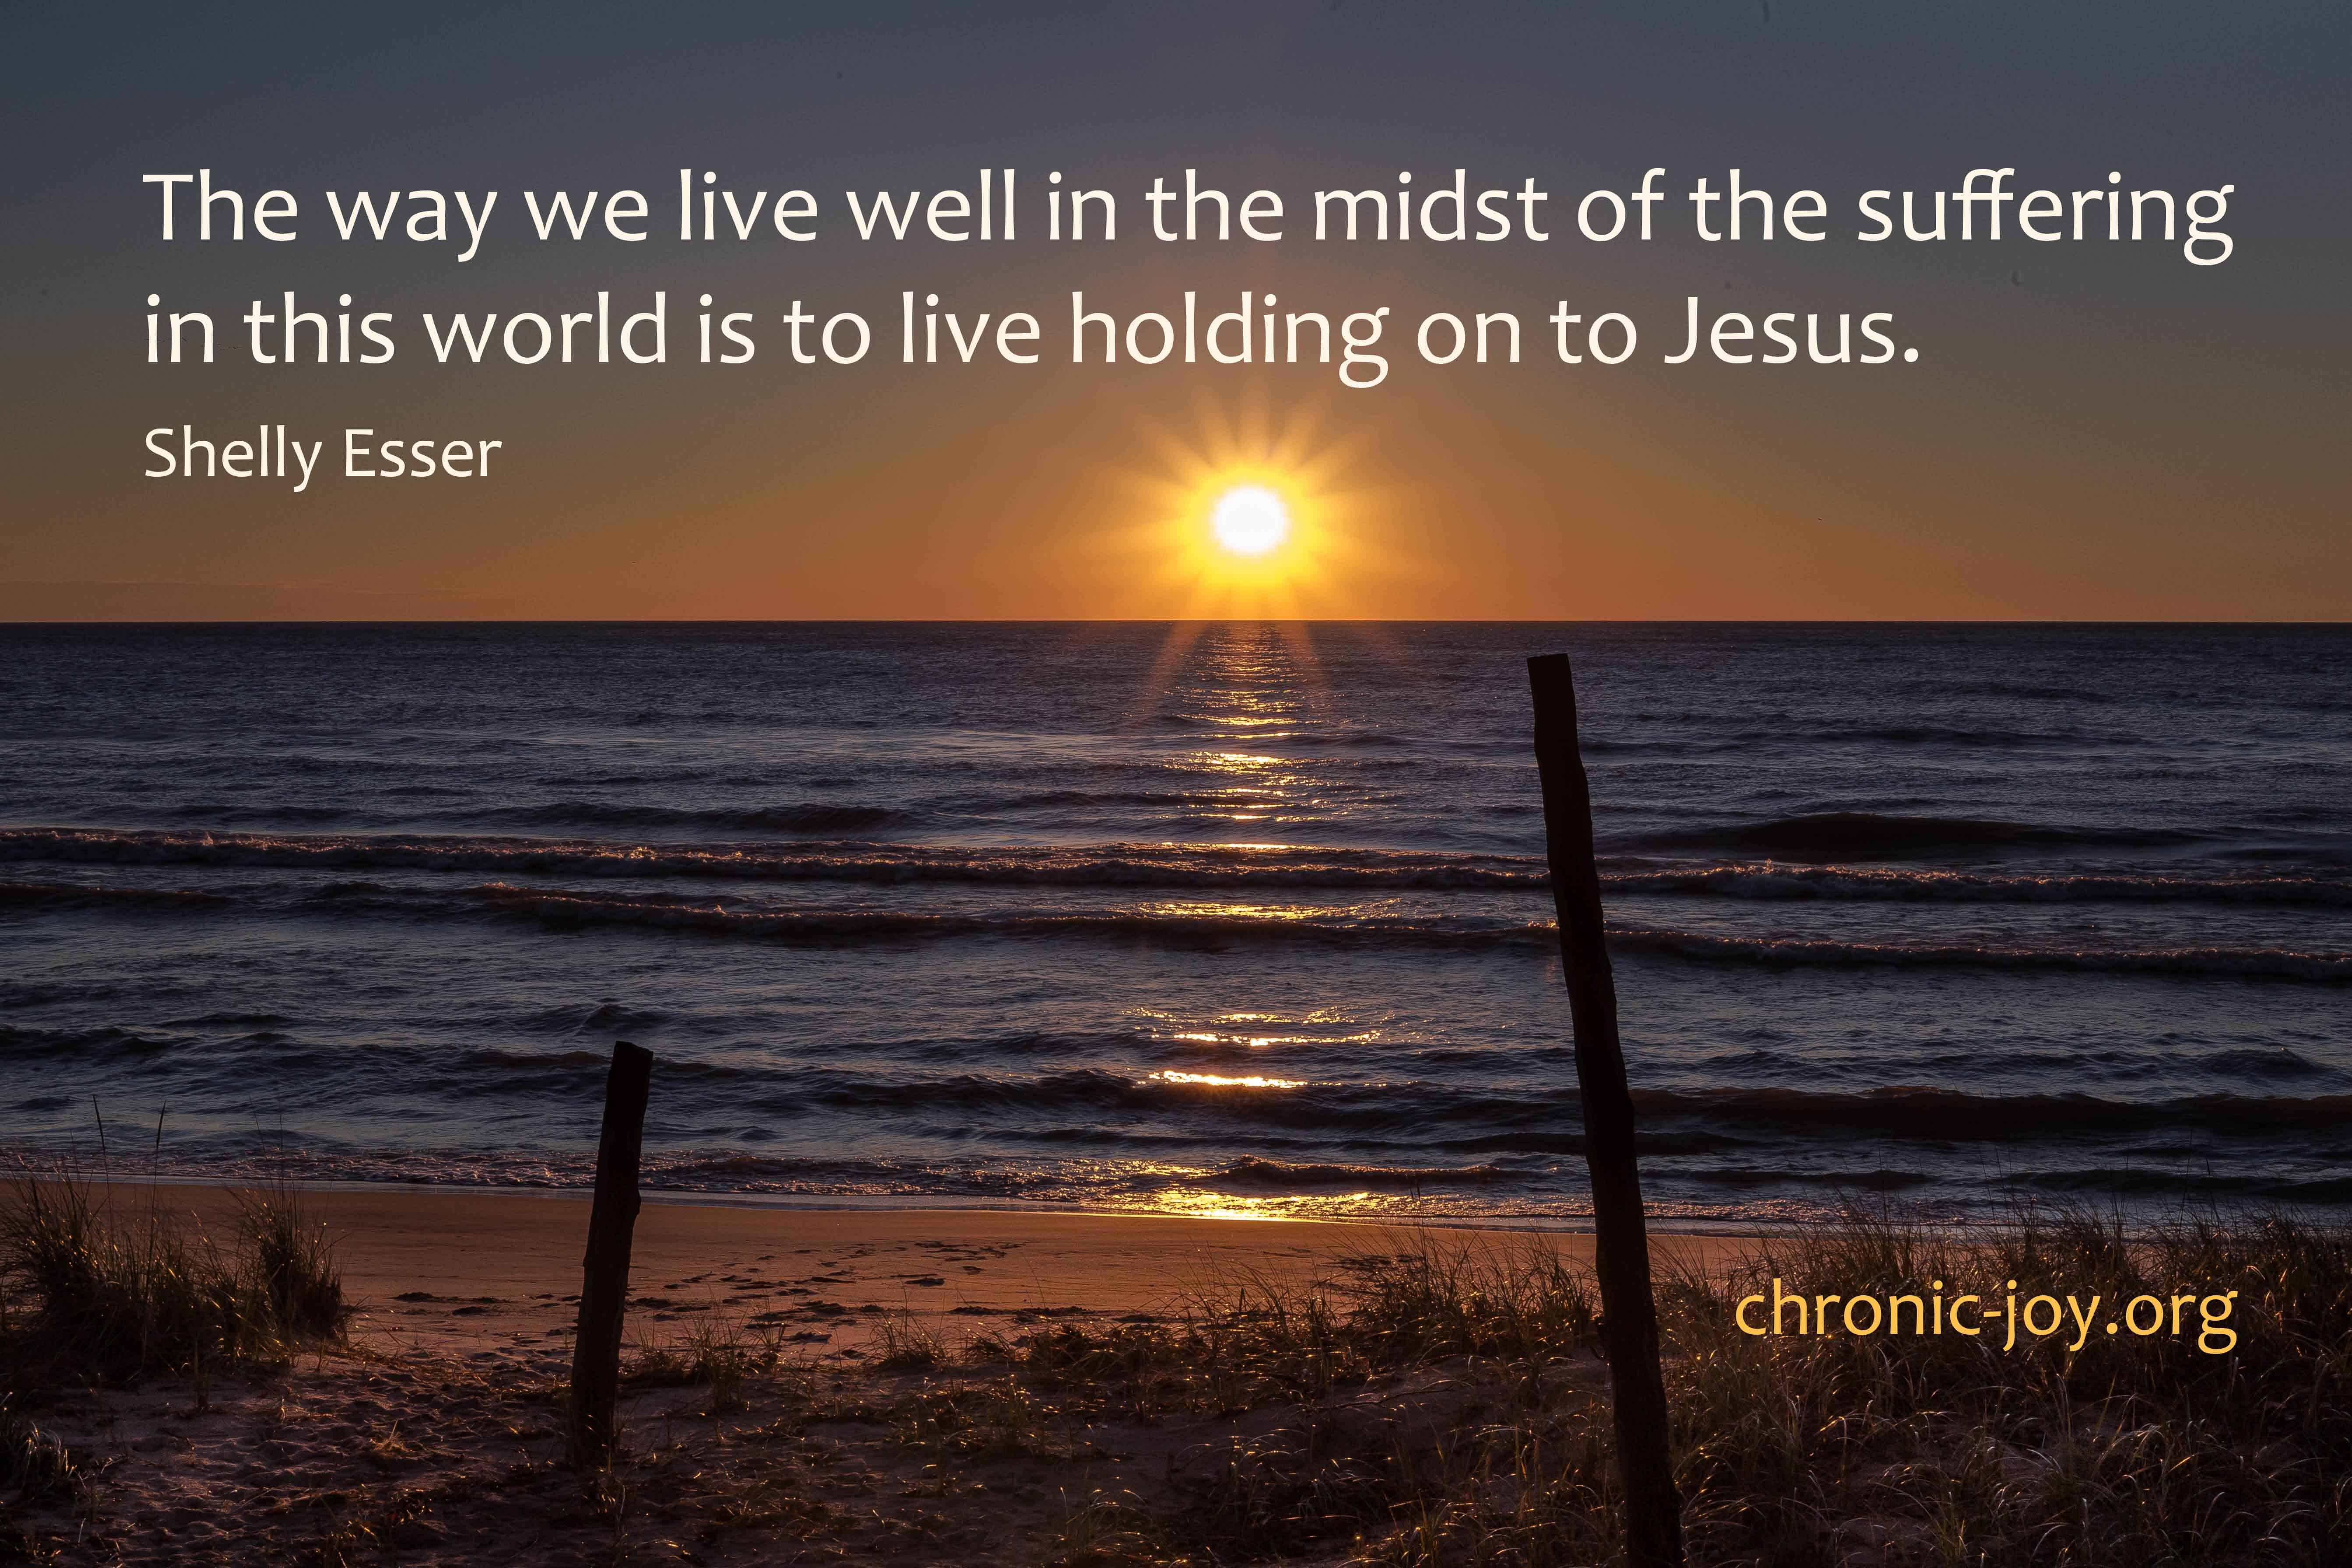 The way we love well in the midst of suffering...